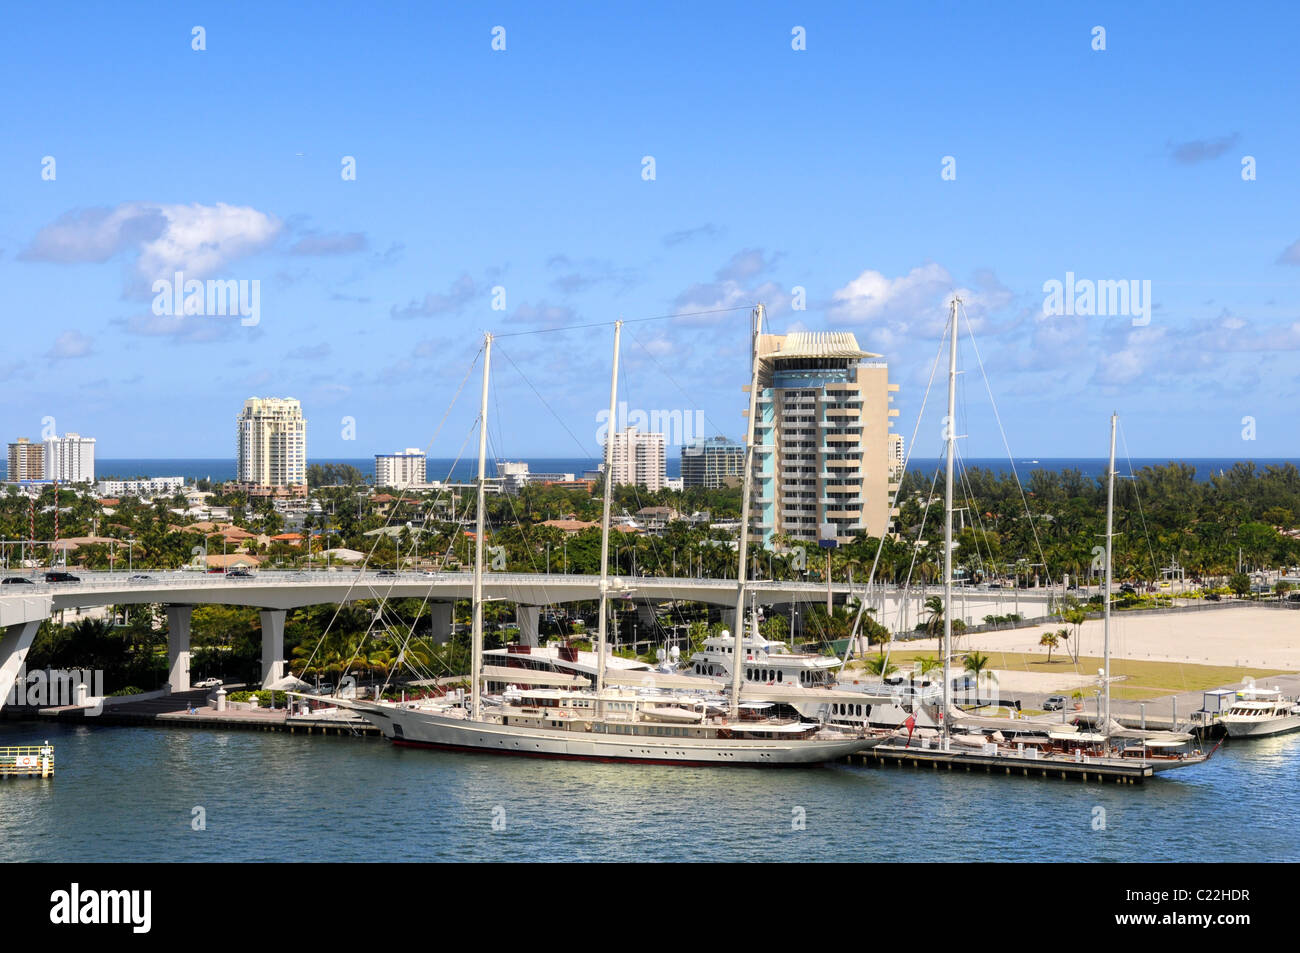 Yachts and boats in Fort Lauderdale Stock Photo